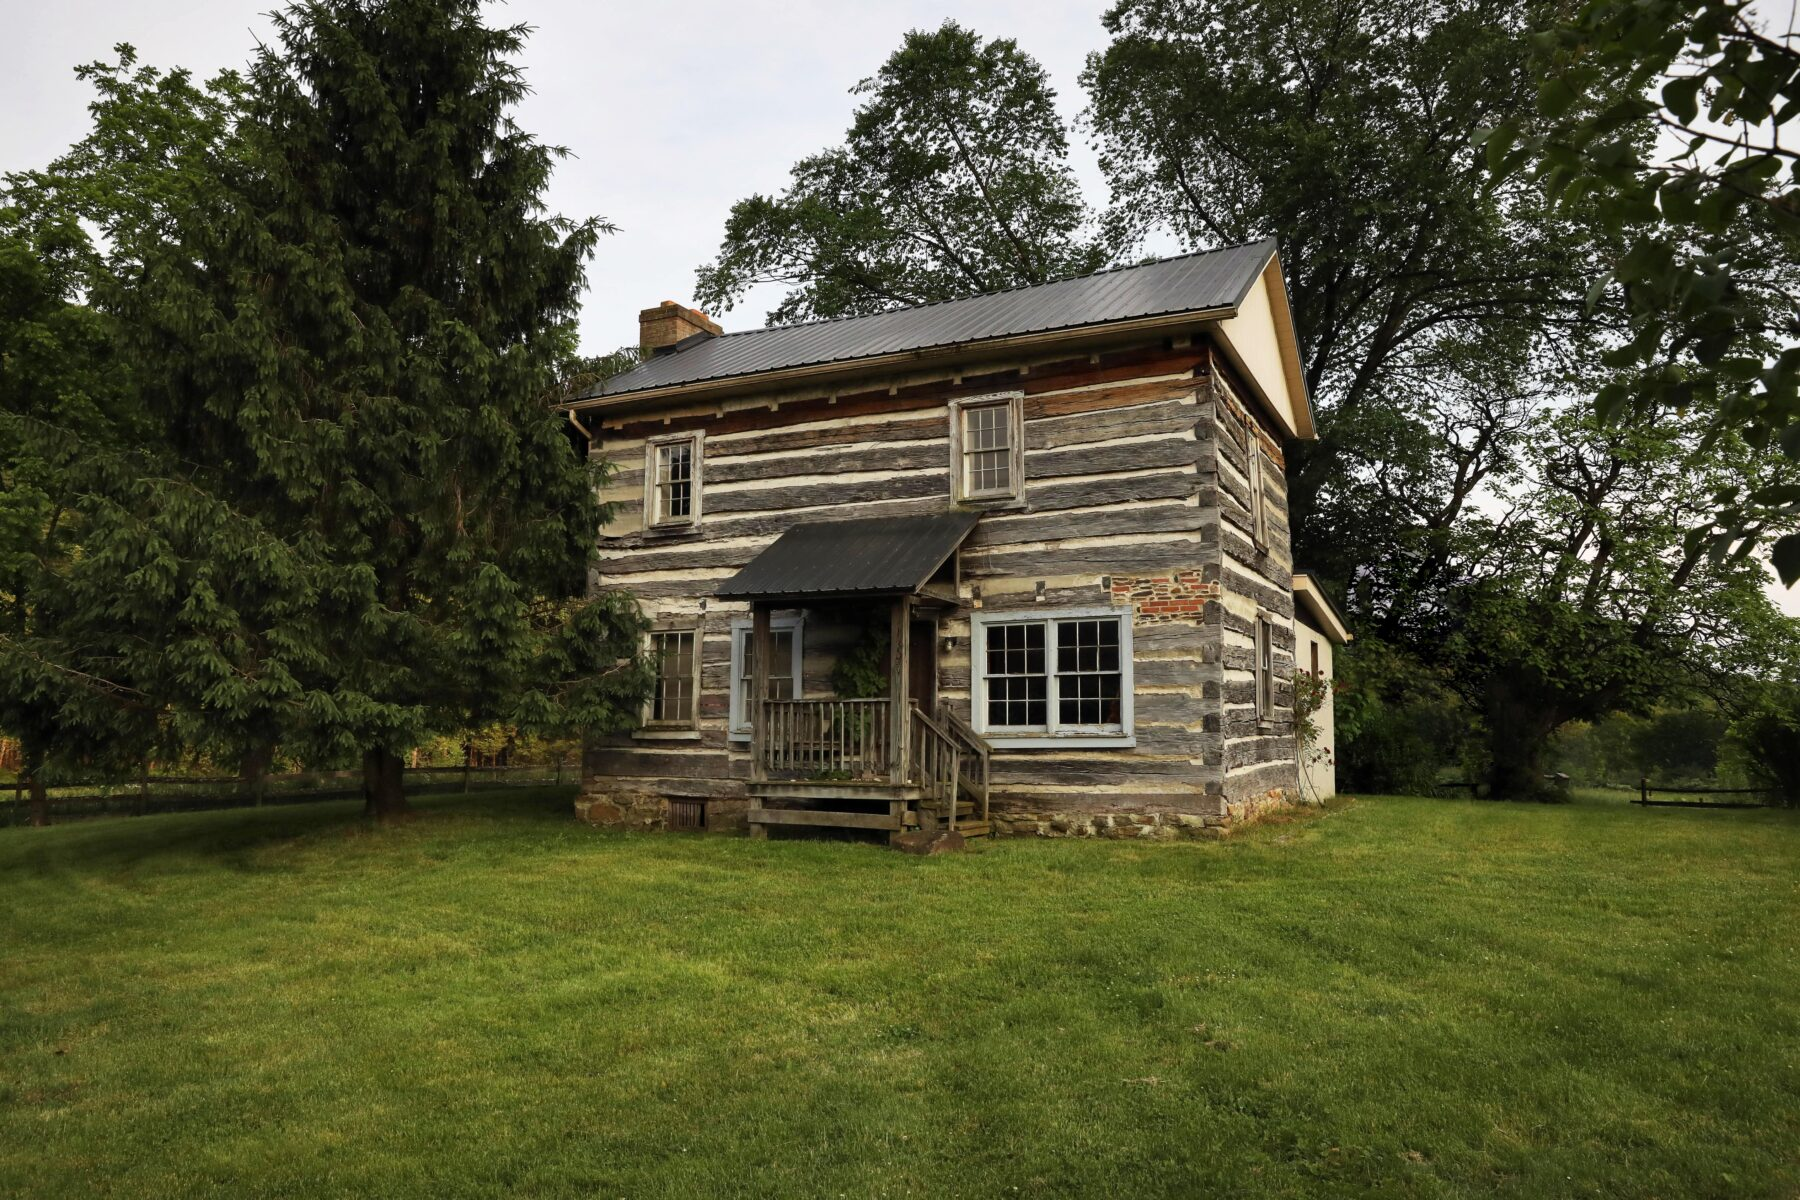 1807 Historic Log Cabin